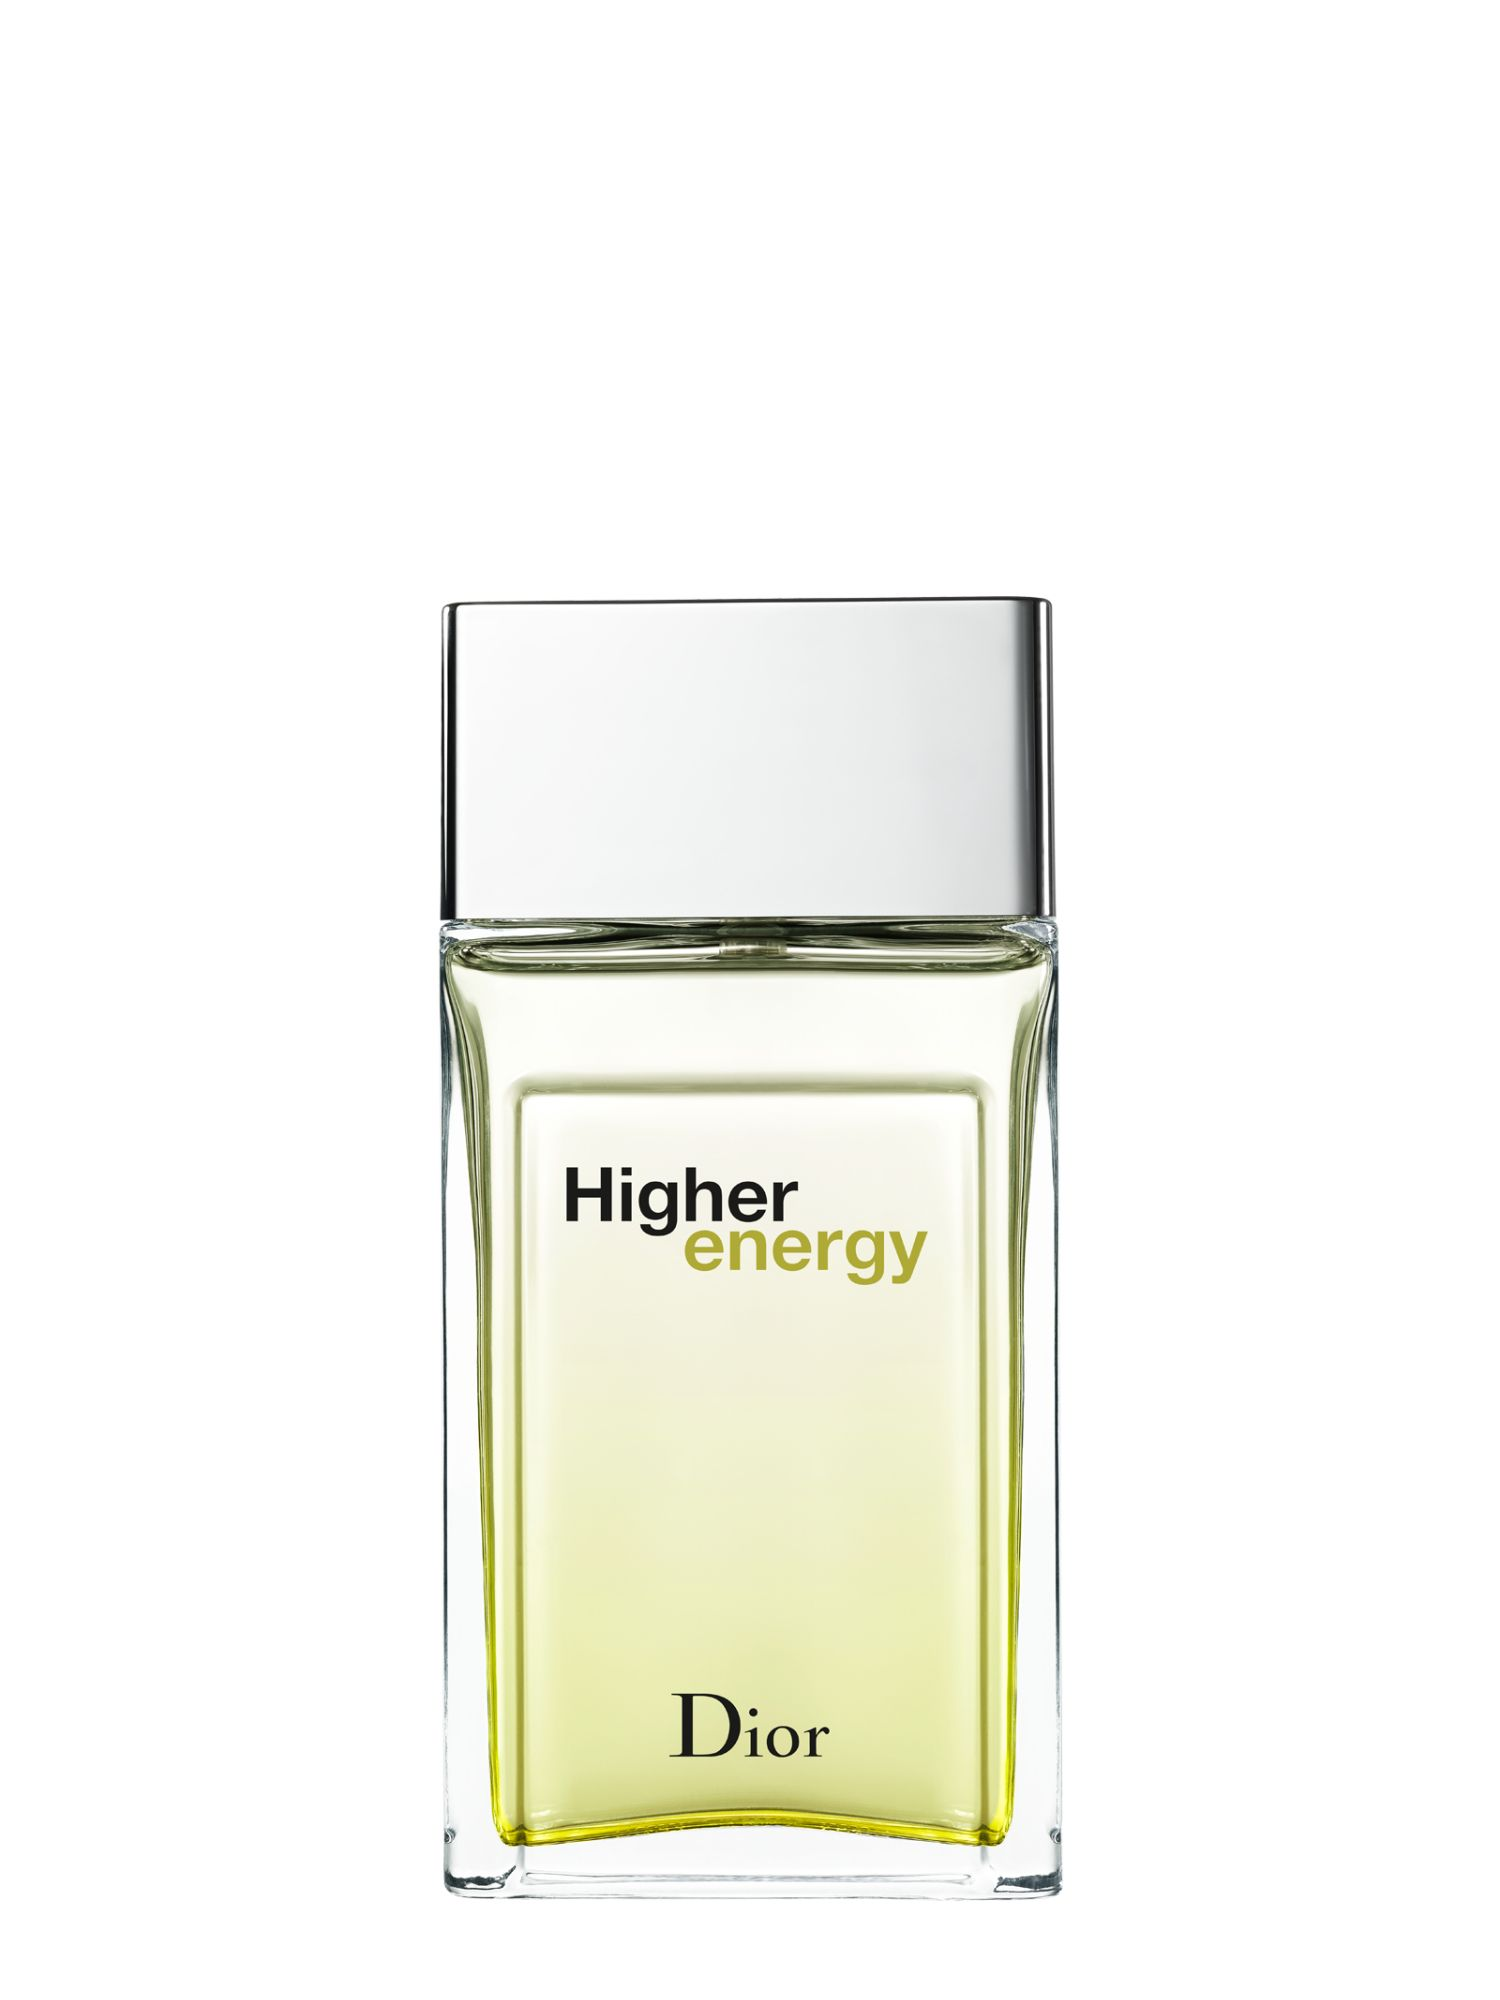 Higher Energy Eau de Toilette 100ml